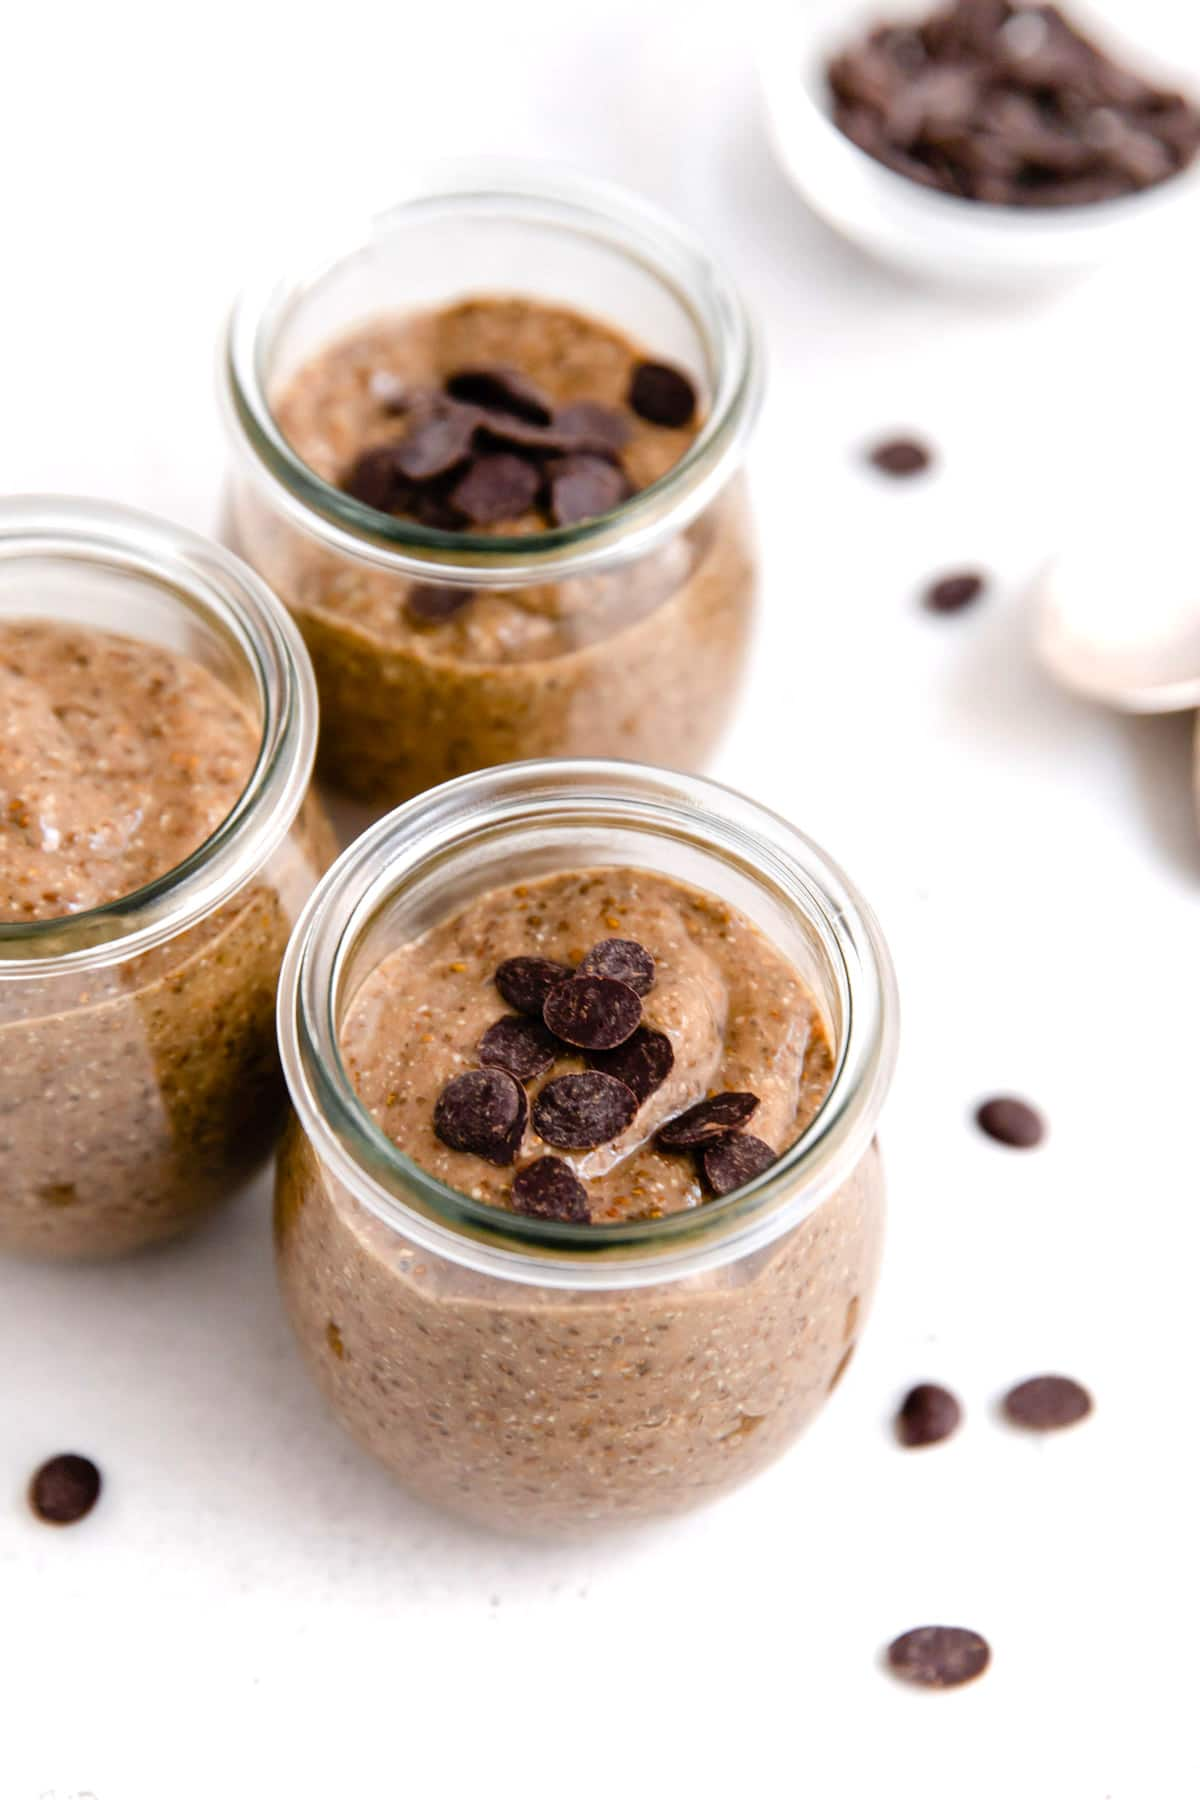 Small jars of chocolate chia seed pudding.